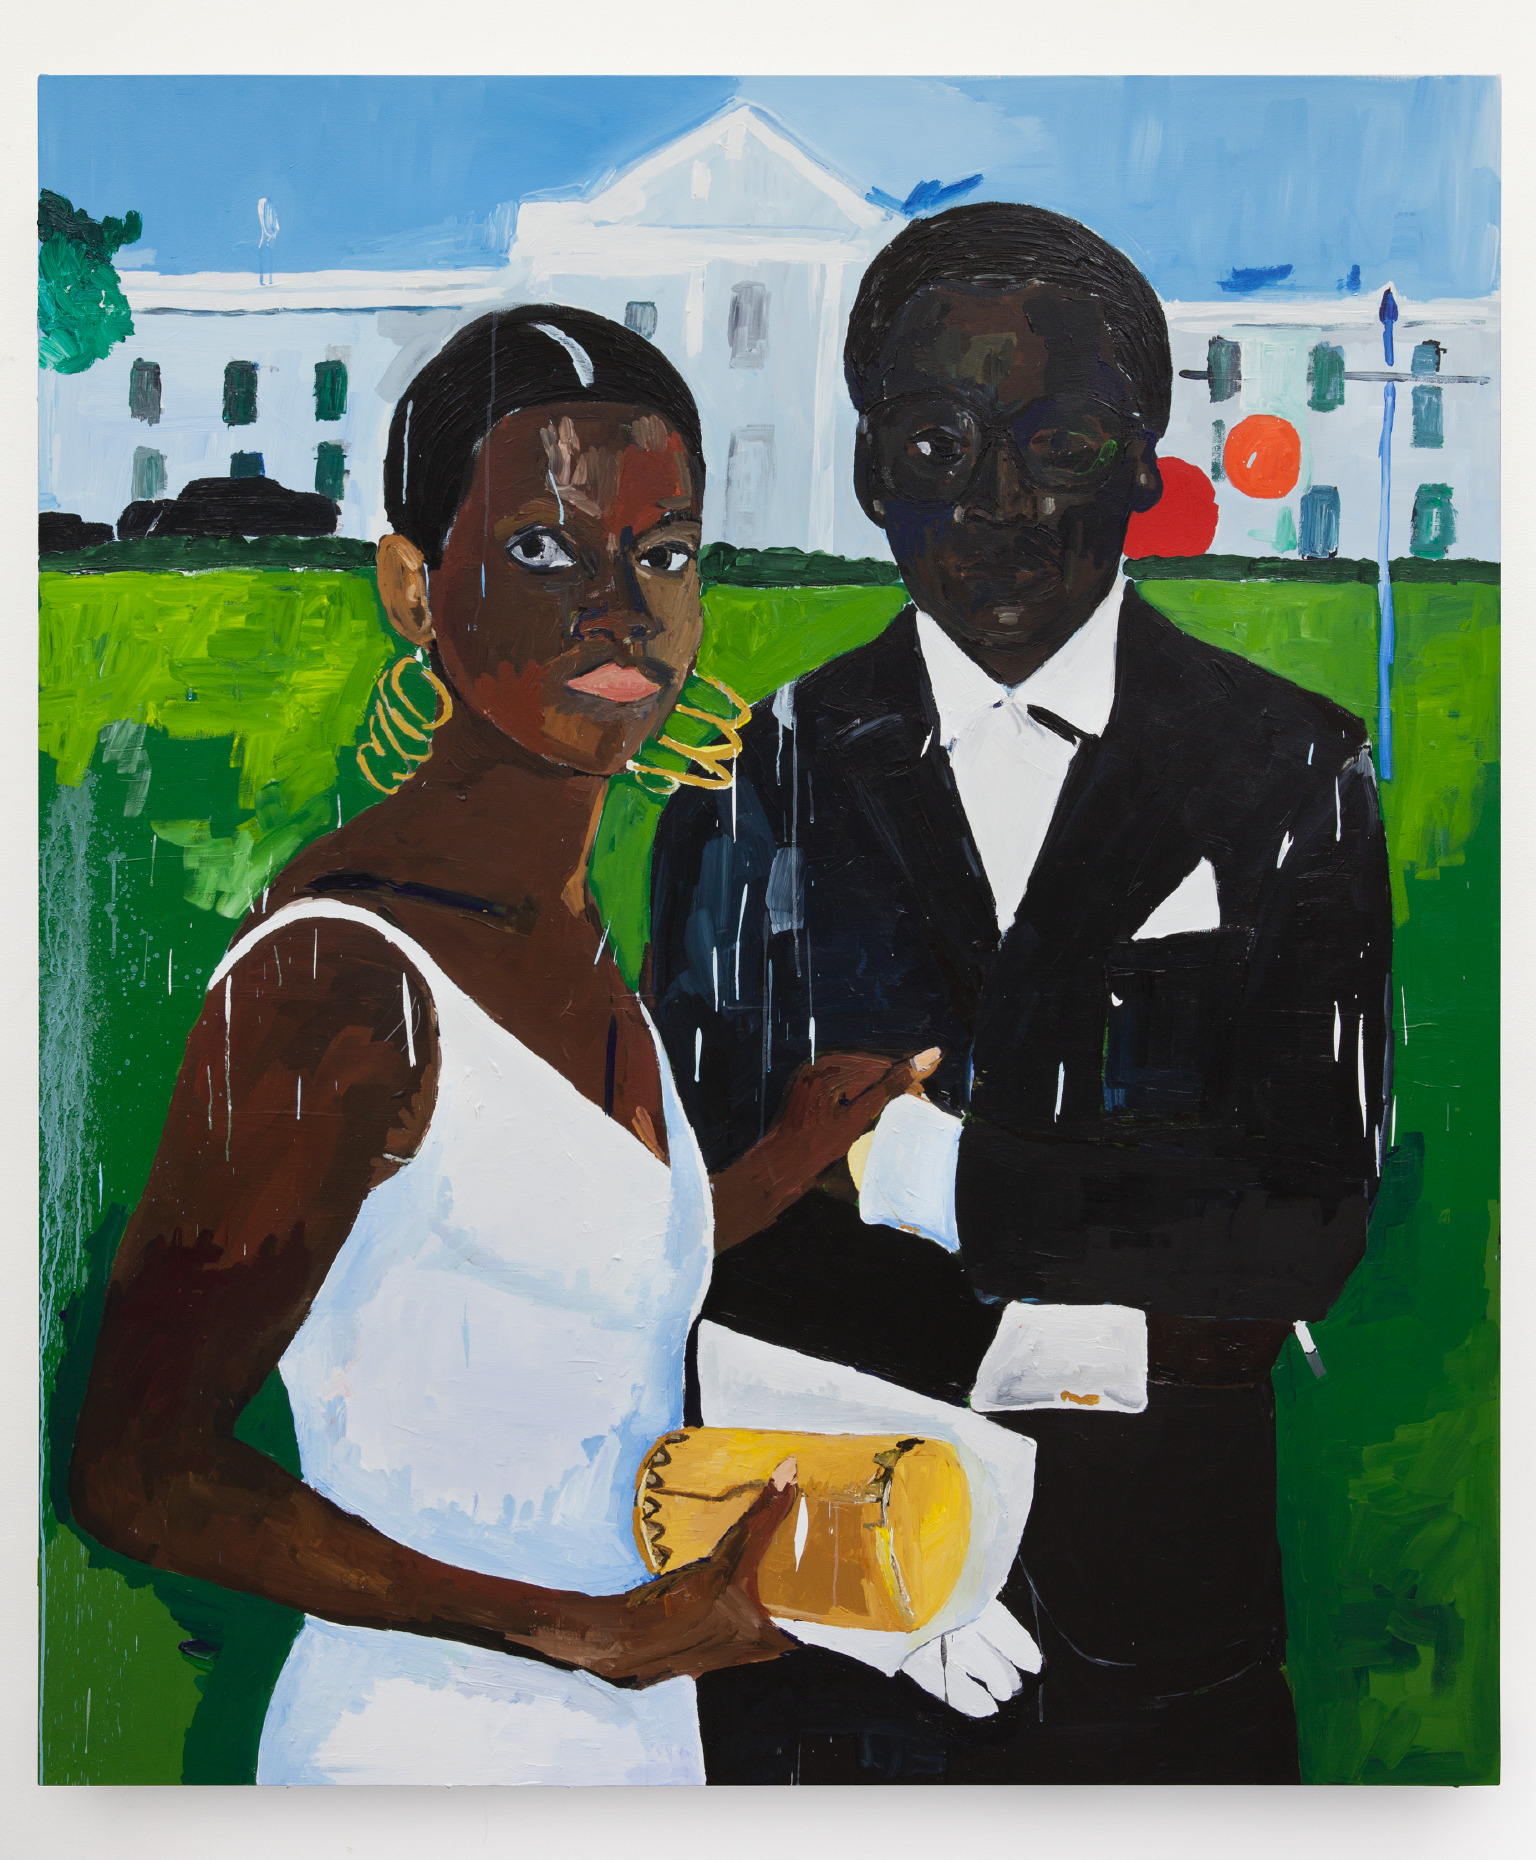 Henry Taylor   Cicely and Miles Visit the Obamas , 2017 ,  Acrylic on canvas ,  84 x 72 inches (213.4 x 182.9 centimeters)© Henry Taylor, Courtesy of the artist and Blum & Poe, Los Angeles/New York/Tokyo